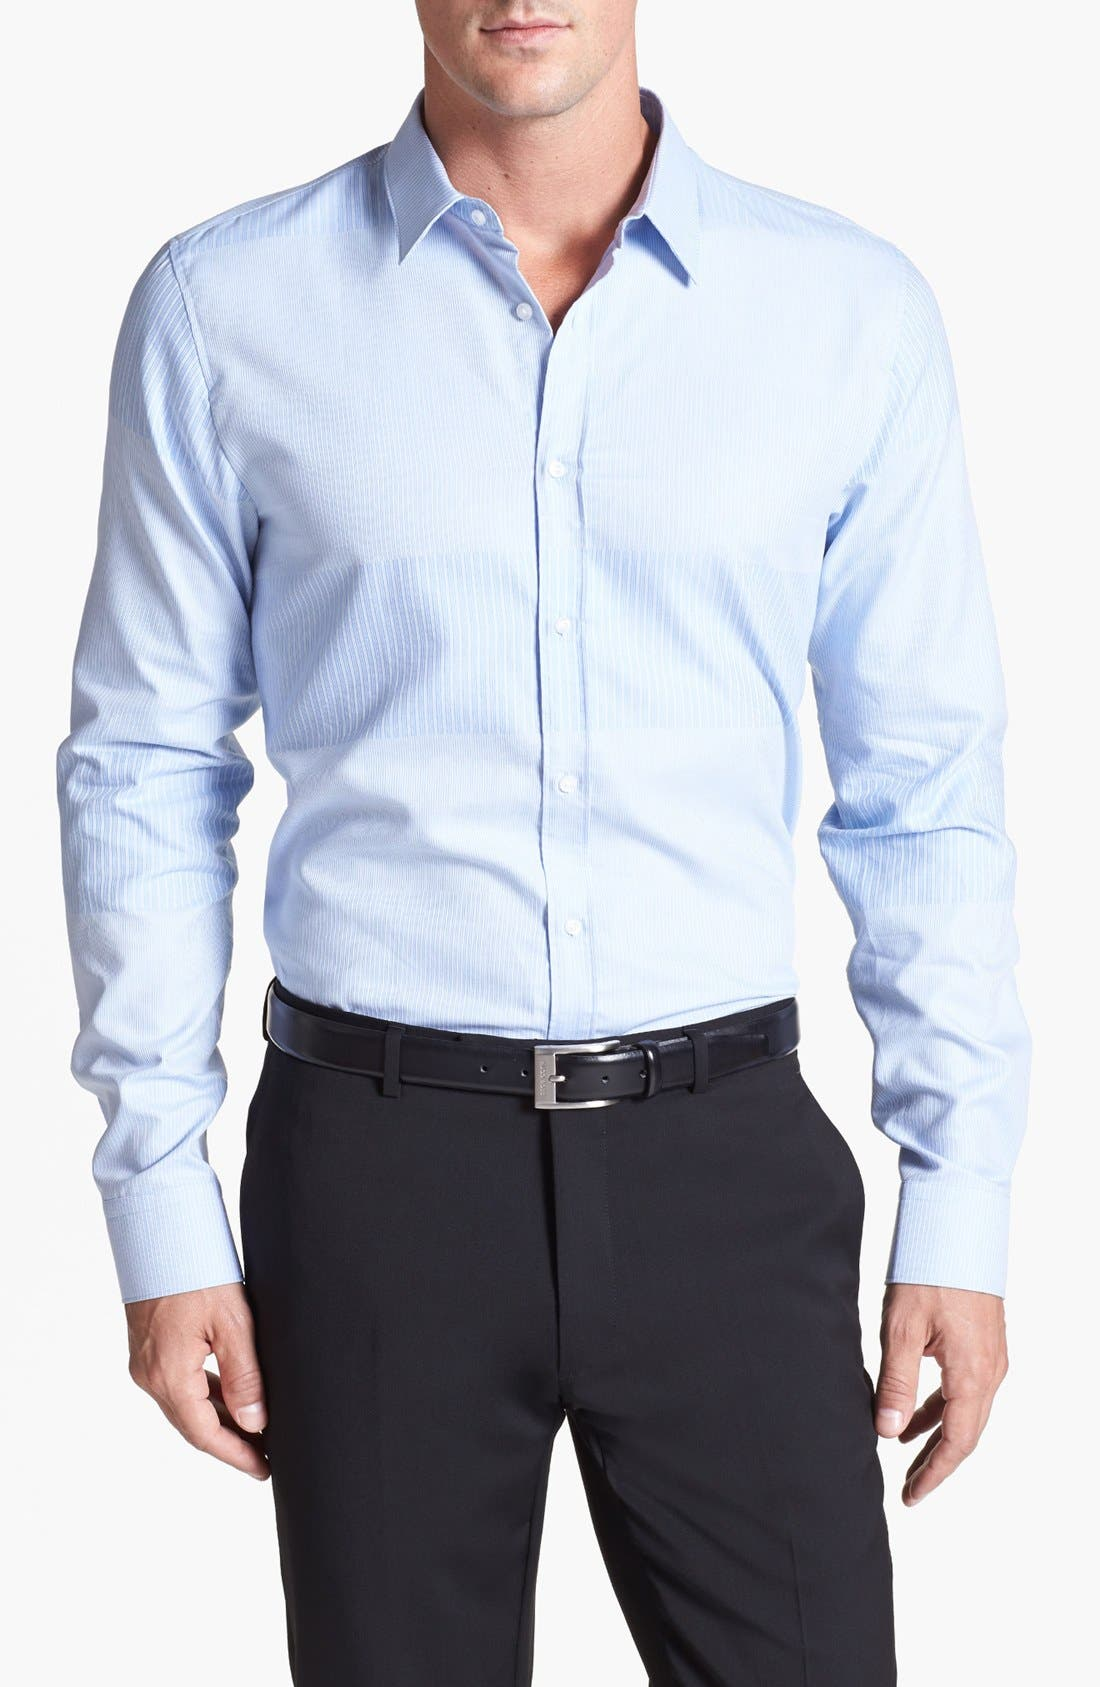 Alternate Image 1 Selected - HUGO 'Elisha' Trim Fit Sport Shirt